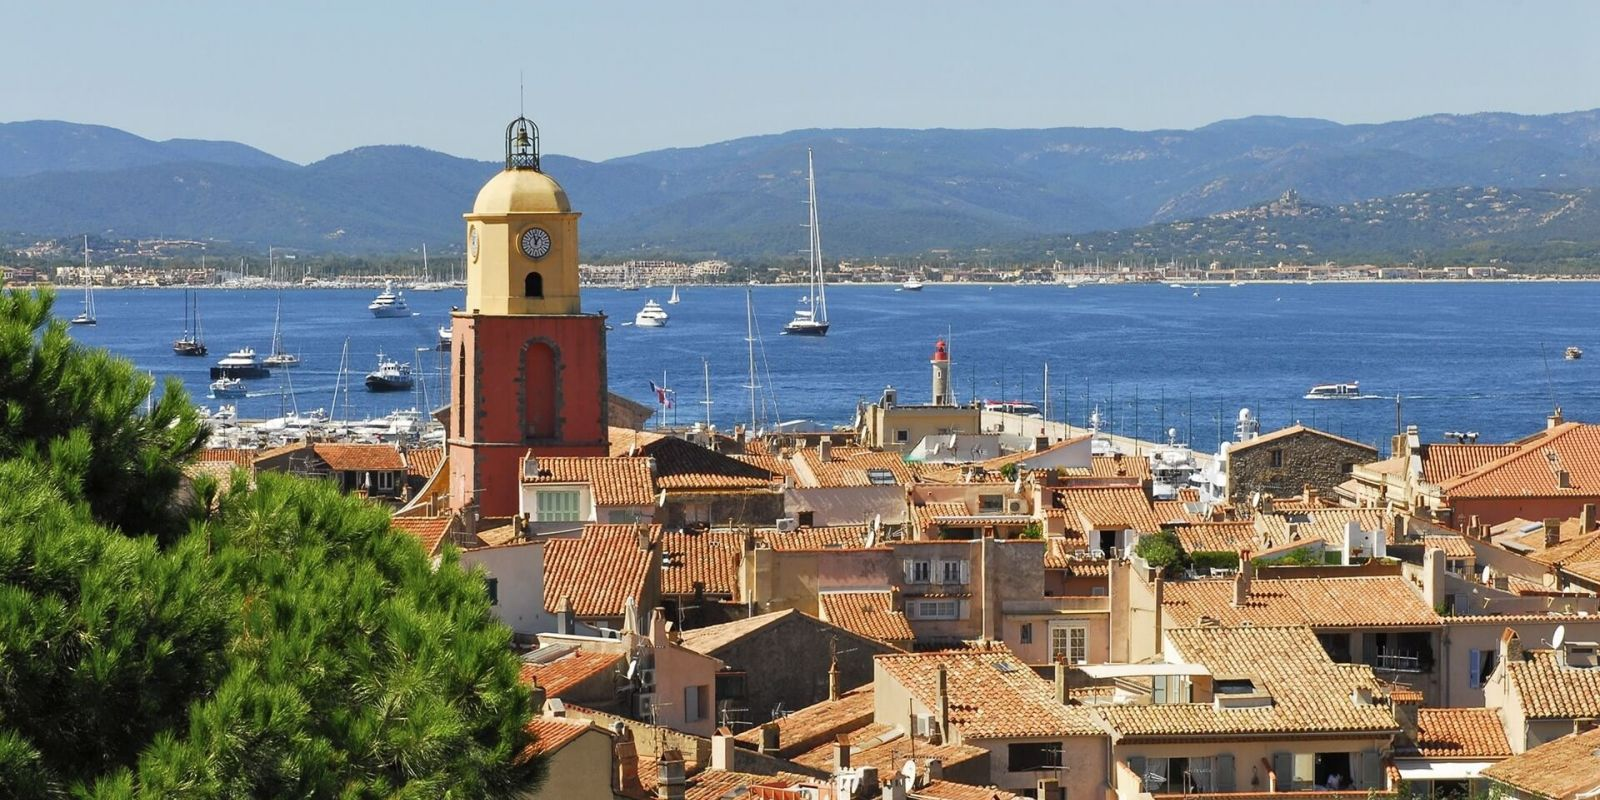 https://www.talamare.com/medias/View of St Tropez village with yachts at anchor